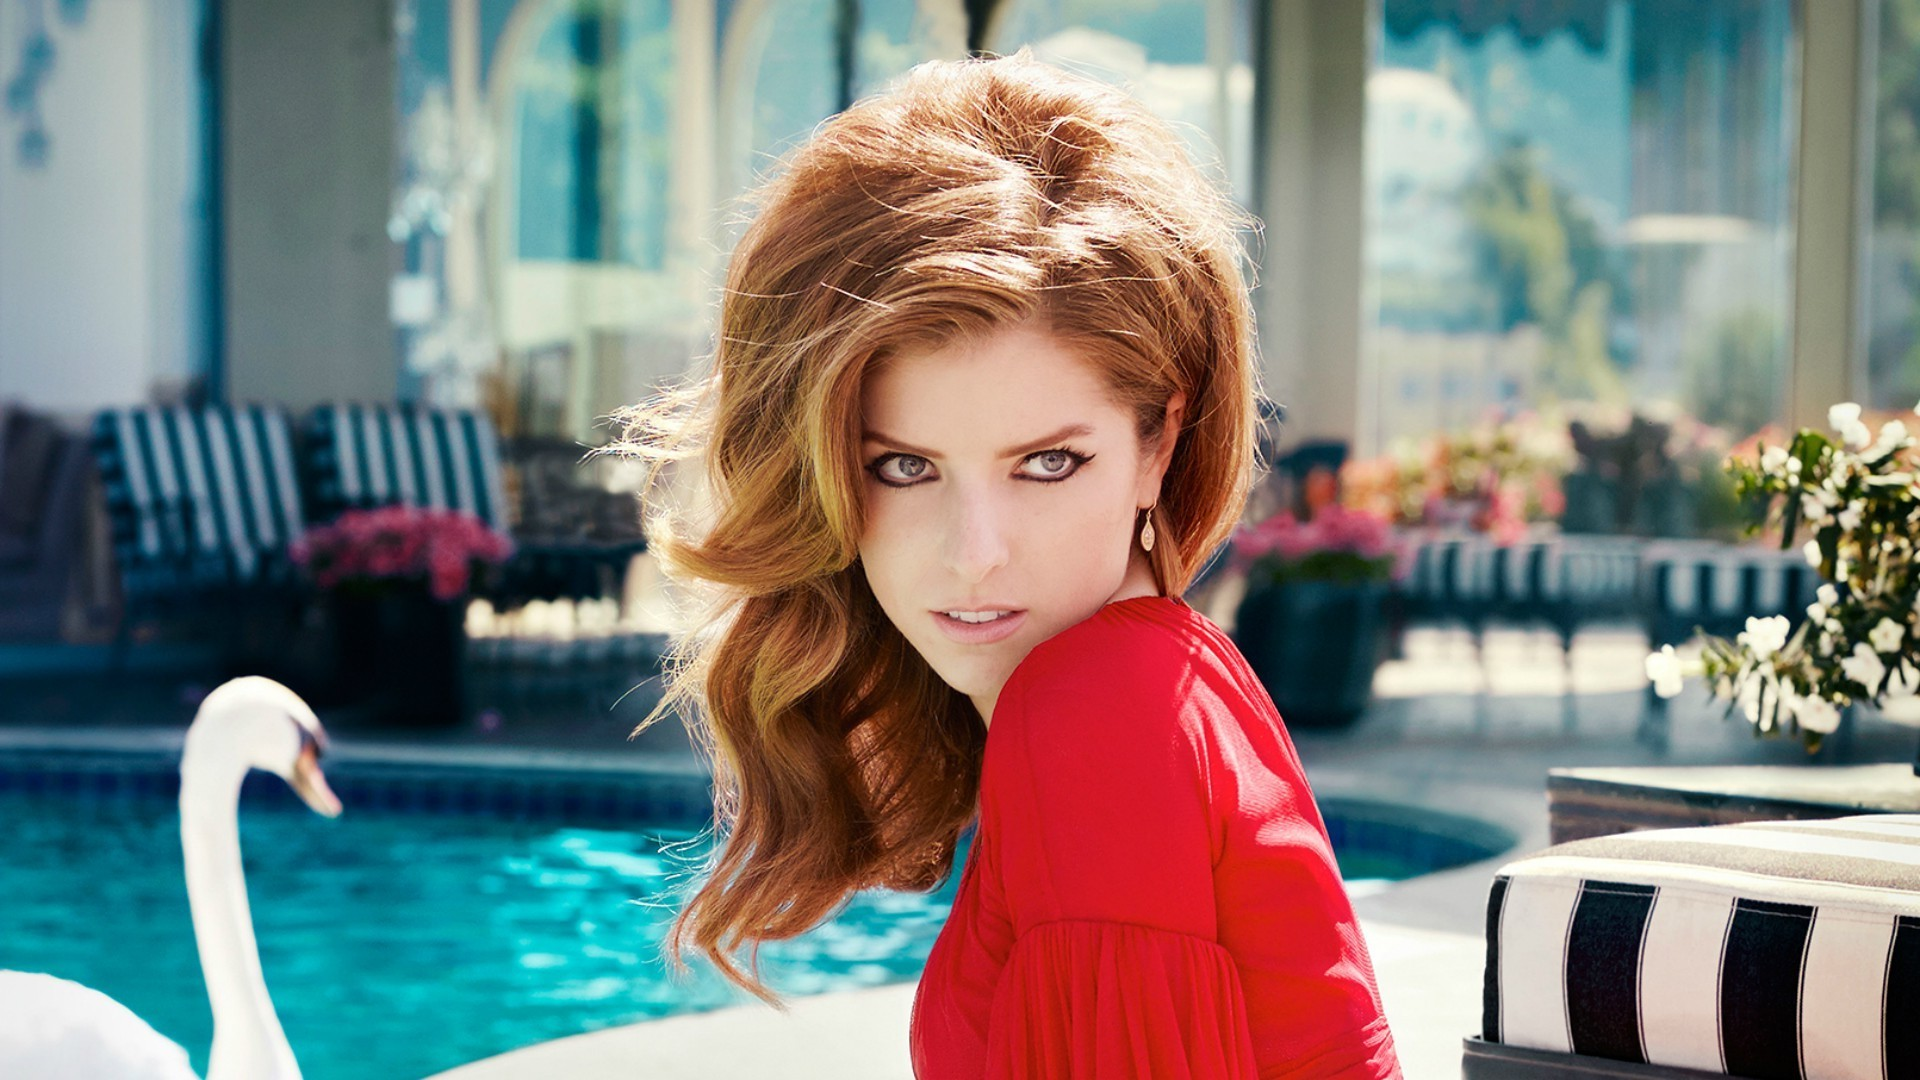 anna kendrick wallpapers 77 images